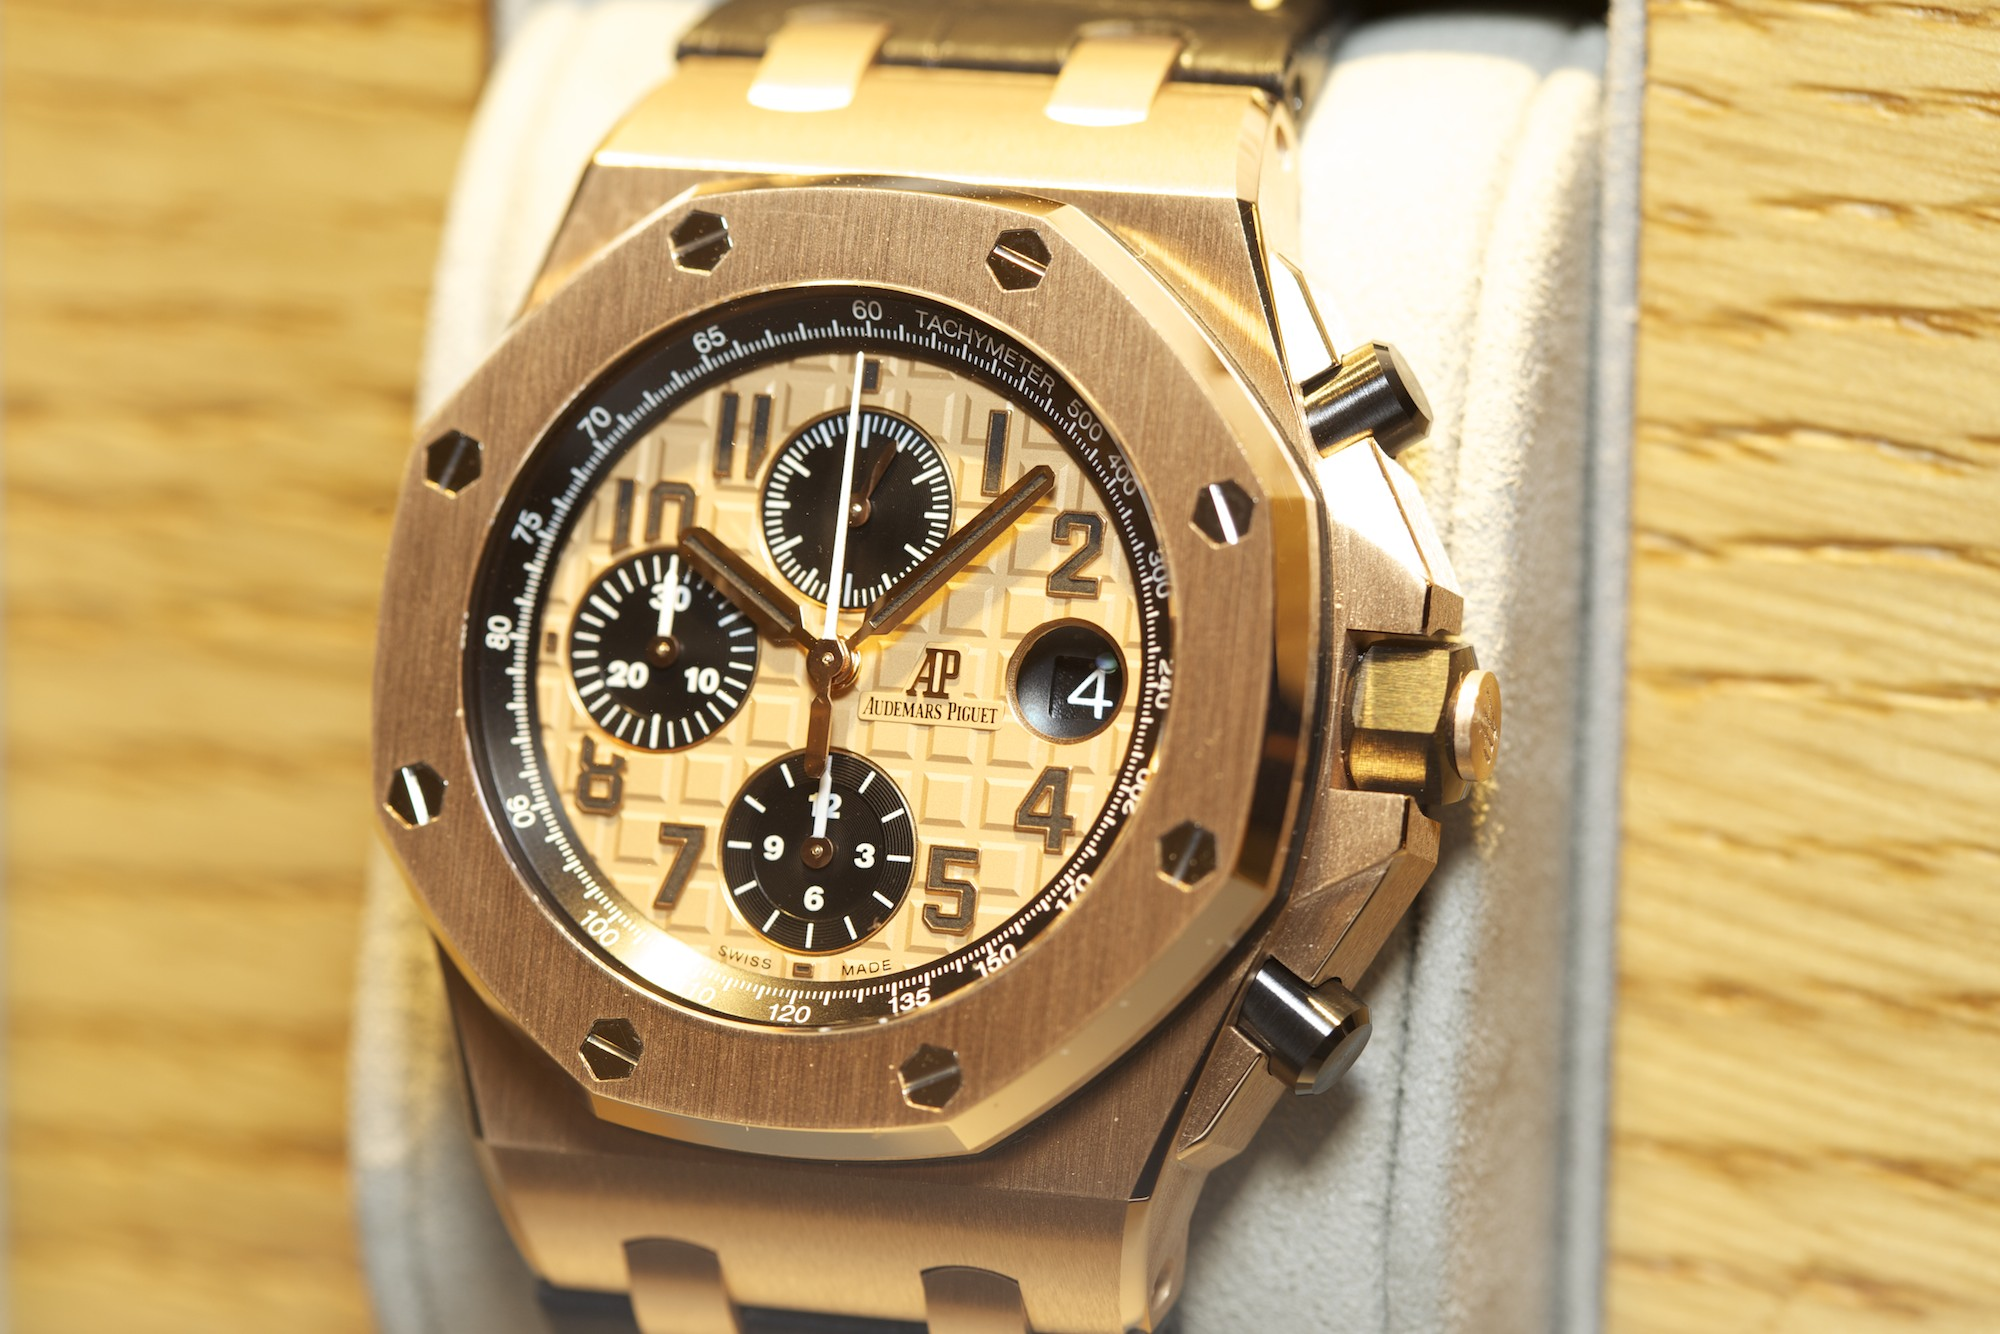 Audemars Piguet Royal Oak Offshore Chronograph - Gold